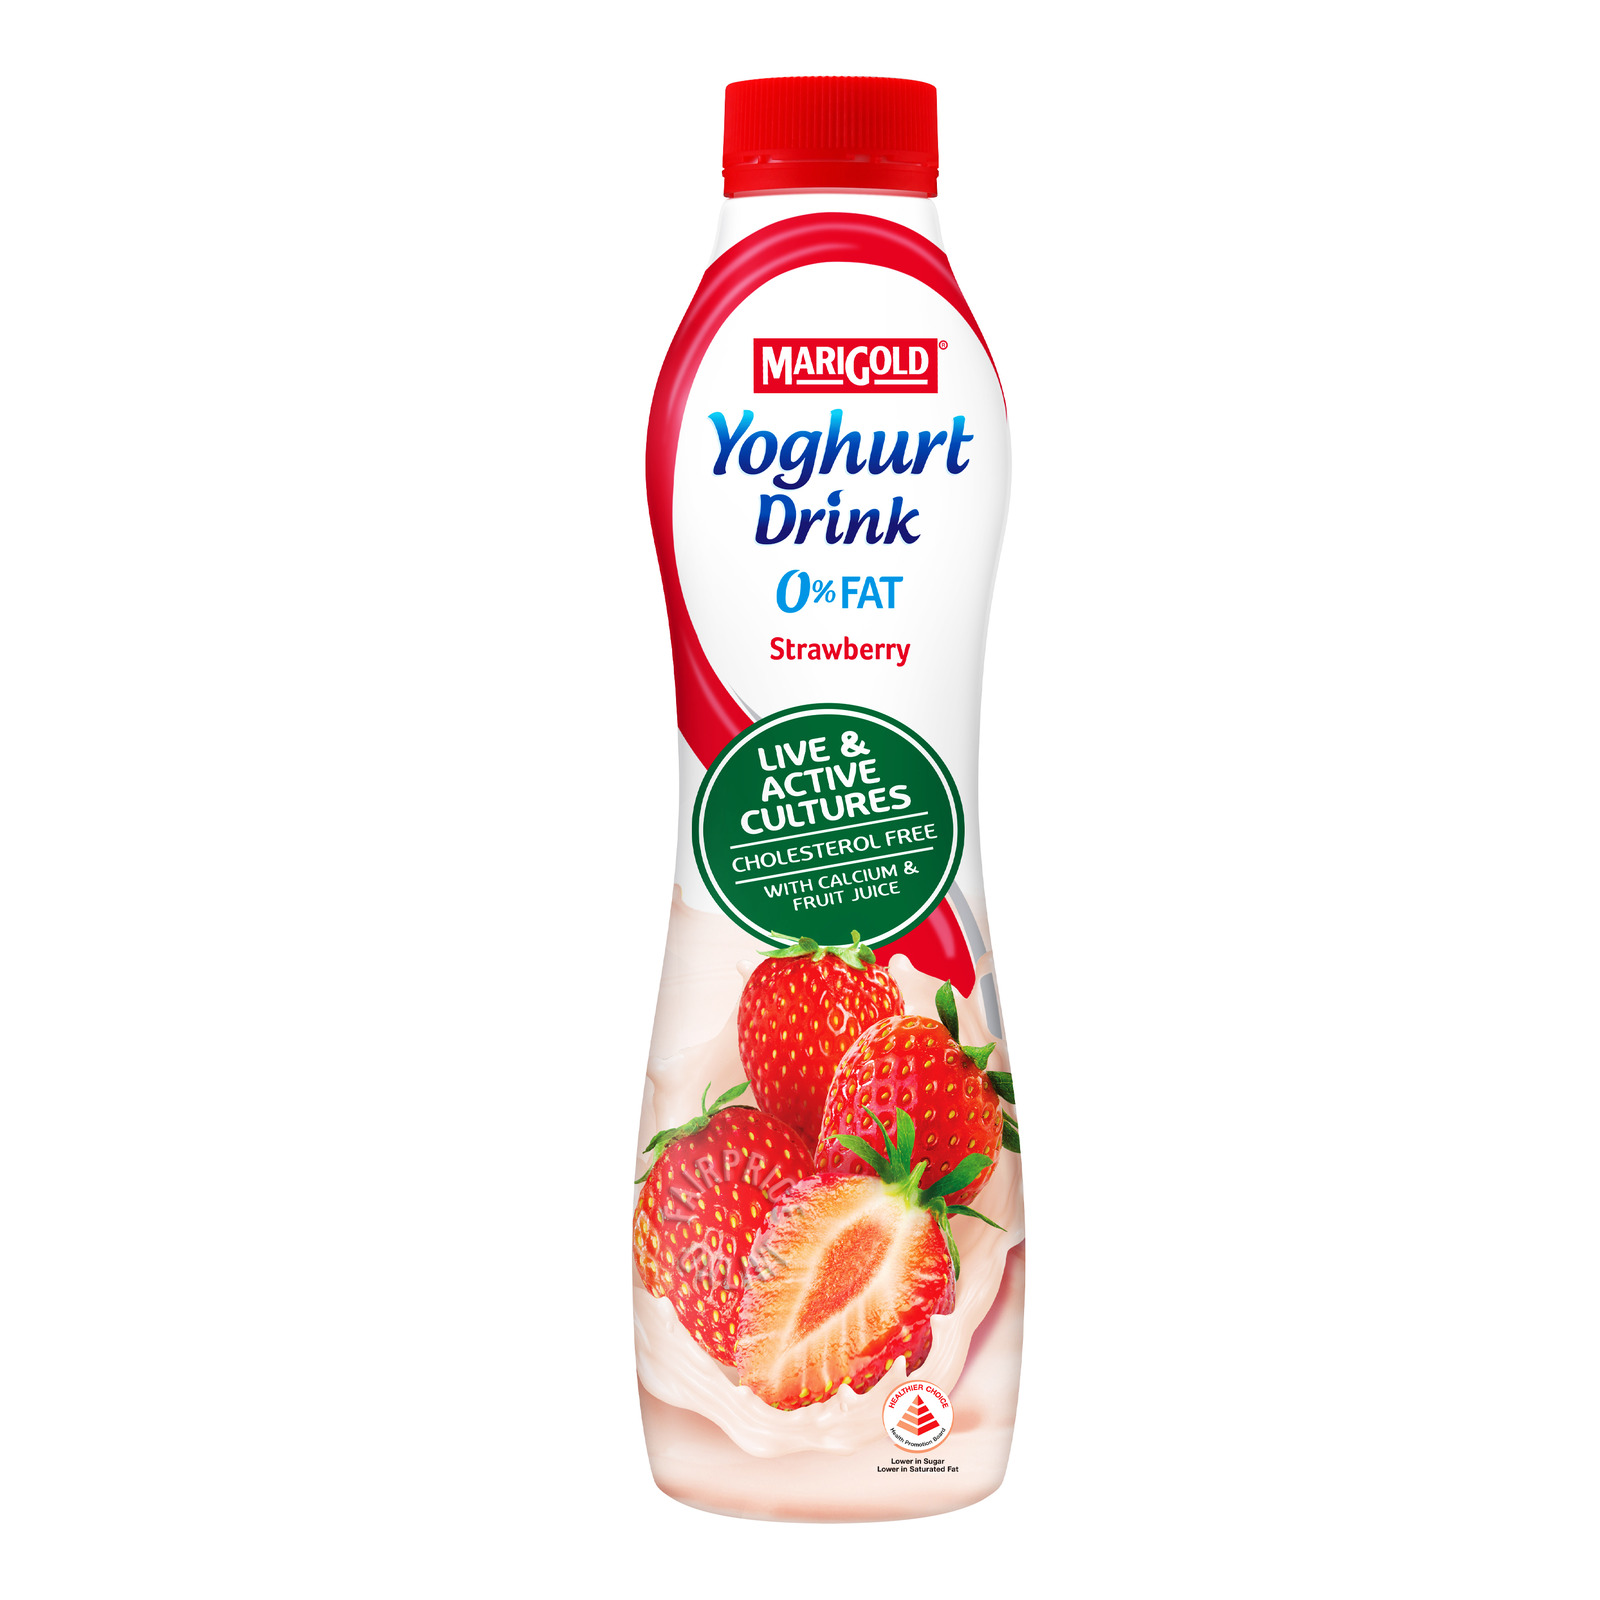 Marigold 0% Fat Yoghurt Bottle Drink - Strawberry